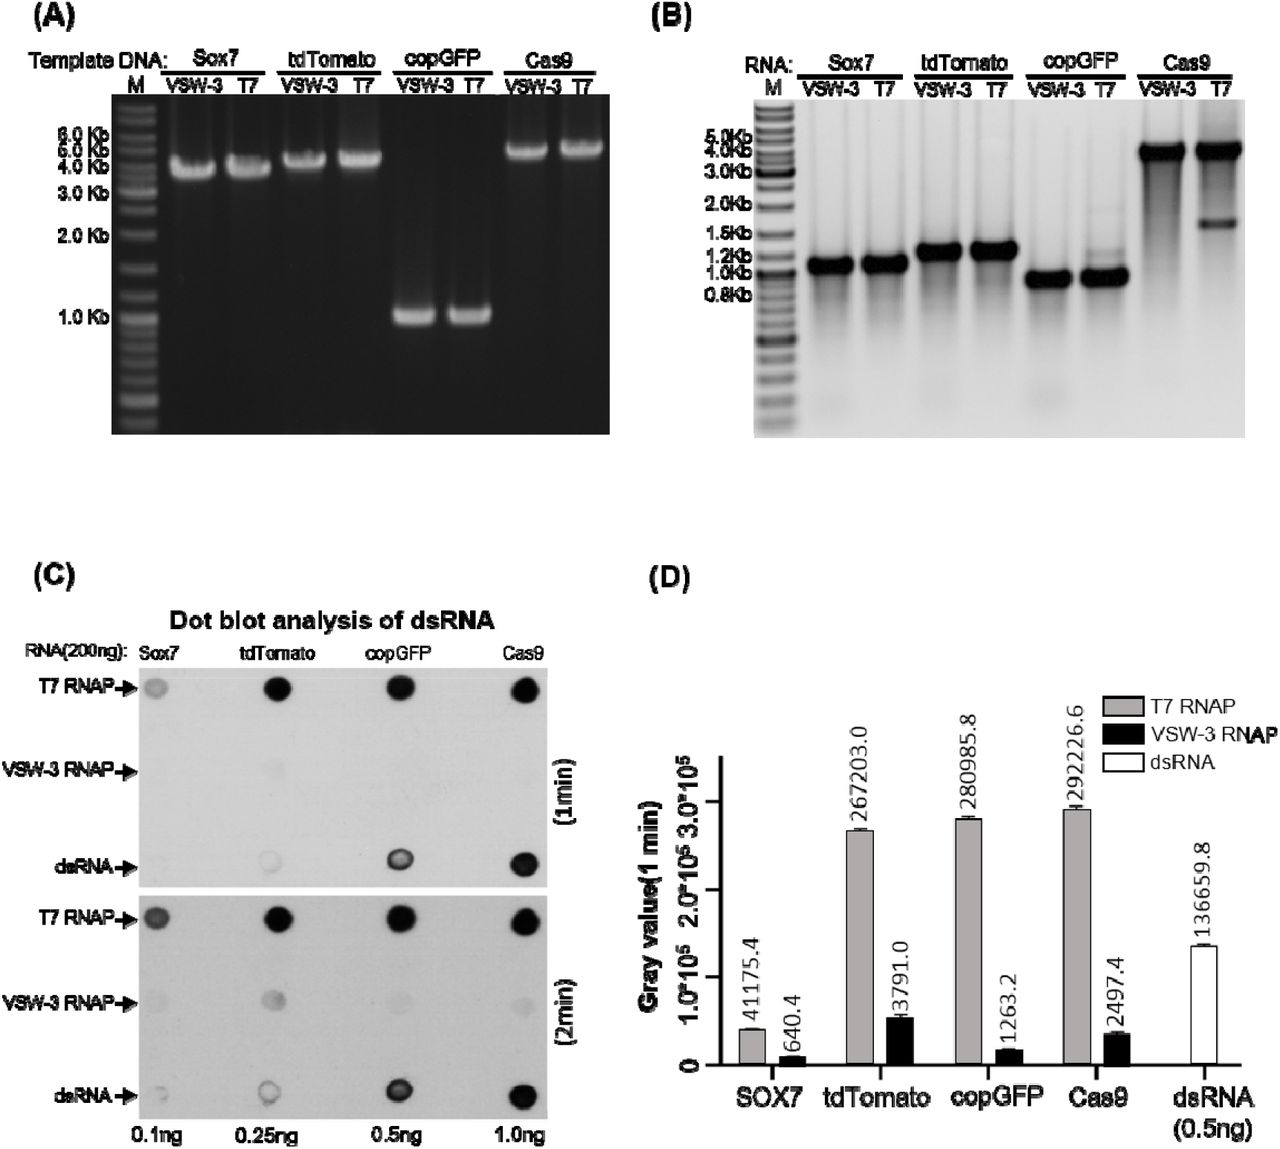 dsRNA by-products from T7 and VSW-3 RNAP IVT. (A) DNA templates for the IVT synthesis of various RNA as indicated on top of the gel. For each RNA, there are two DNA templates differ only in the promoter region to serve for VSW-3 and T7 RNAP IVT, respectively. DNA concentration and purity were compared in 1.5% agarose gel stained with ethidium bromide. (B) After template DNA was removed by DNase I treatment and purified with Monarch RNA Cleanup kit, 1μg of sox7, tdTomato, copGFP and Cas9 RNA transcribed by VSW-3 RNAP and T7 RNAP were analyzed in 1.5% agarose gel stained with ethidium bromide. The white and black colors for bands and background were converted in this gel picture to make the weak double-stranded and abortive RNA bands clearer. (C) Dot blot analysis of the RNA products (each 200 ng) as in (B) by VSW-3 RNAP and T7 RNAP with J2 monoclonal antibody. A prepared dsRNA (351 bp) was applied as quantitative standard (0.1 ng, 0.25 ng, 0.5 ng, 1.0 ng). (D) The gray value measurement and calculation of the X film image (top image in (C) ) by Image J software demonstrating the level of dsRNA contamination in T7 and VSW-3 RNAP transcripts.